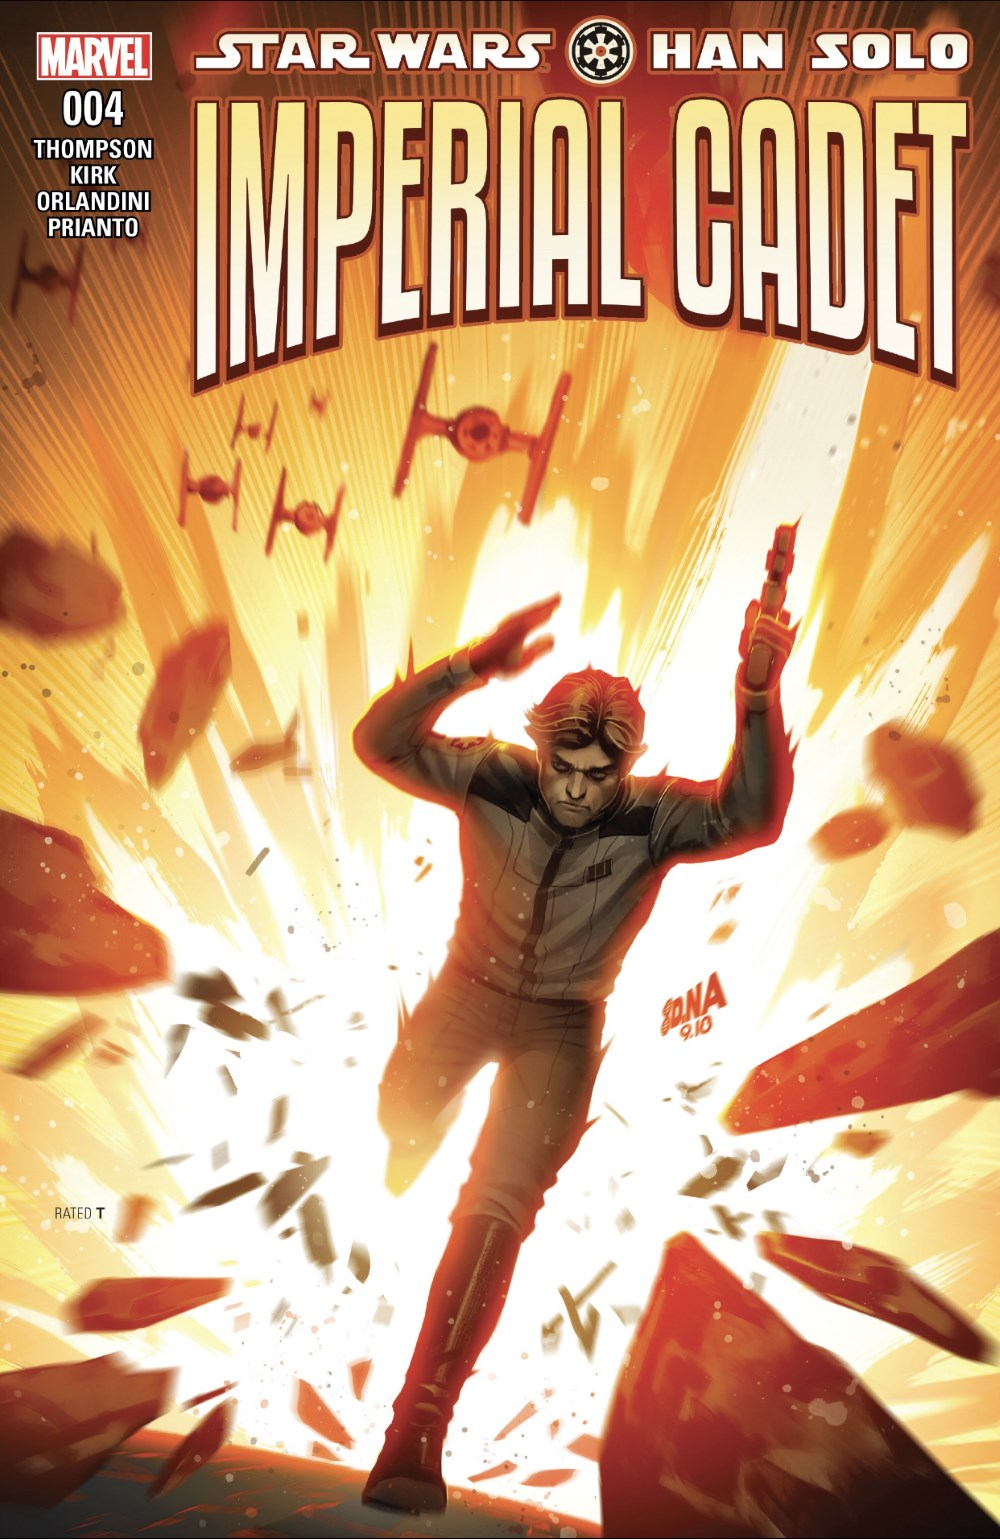 Han Solo: Imperial Cadet #4 Review